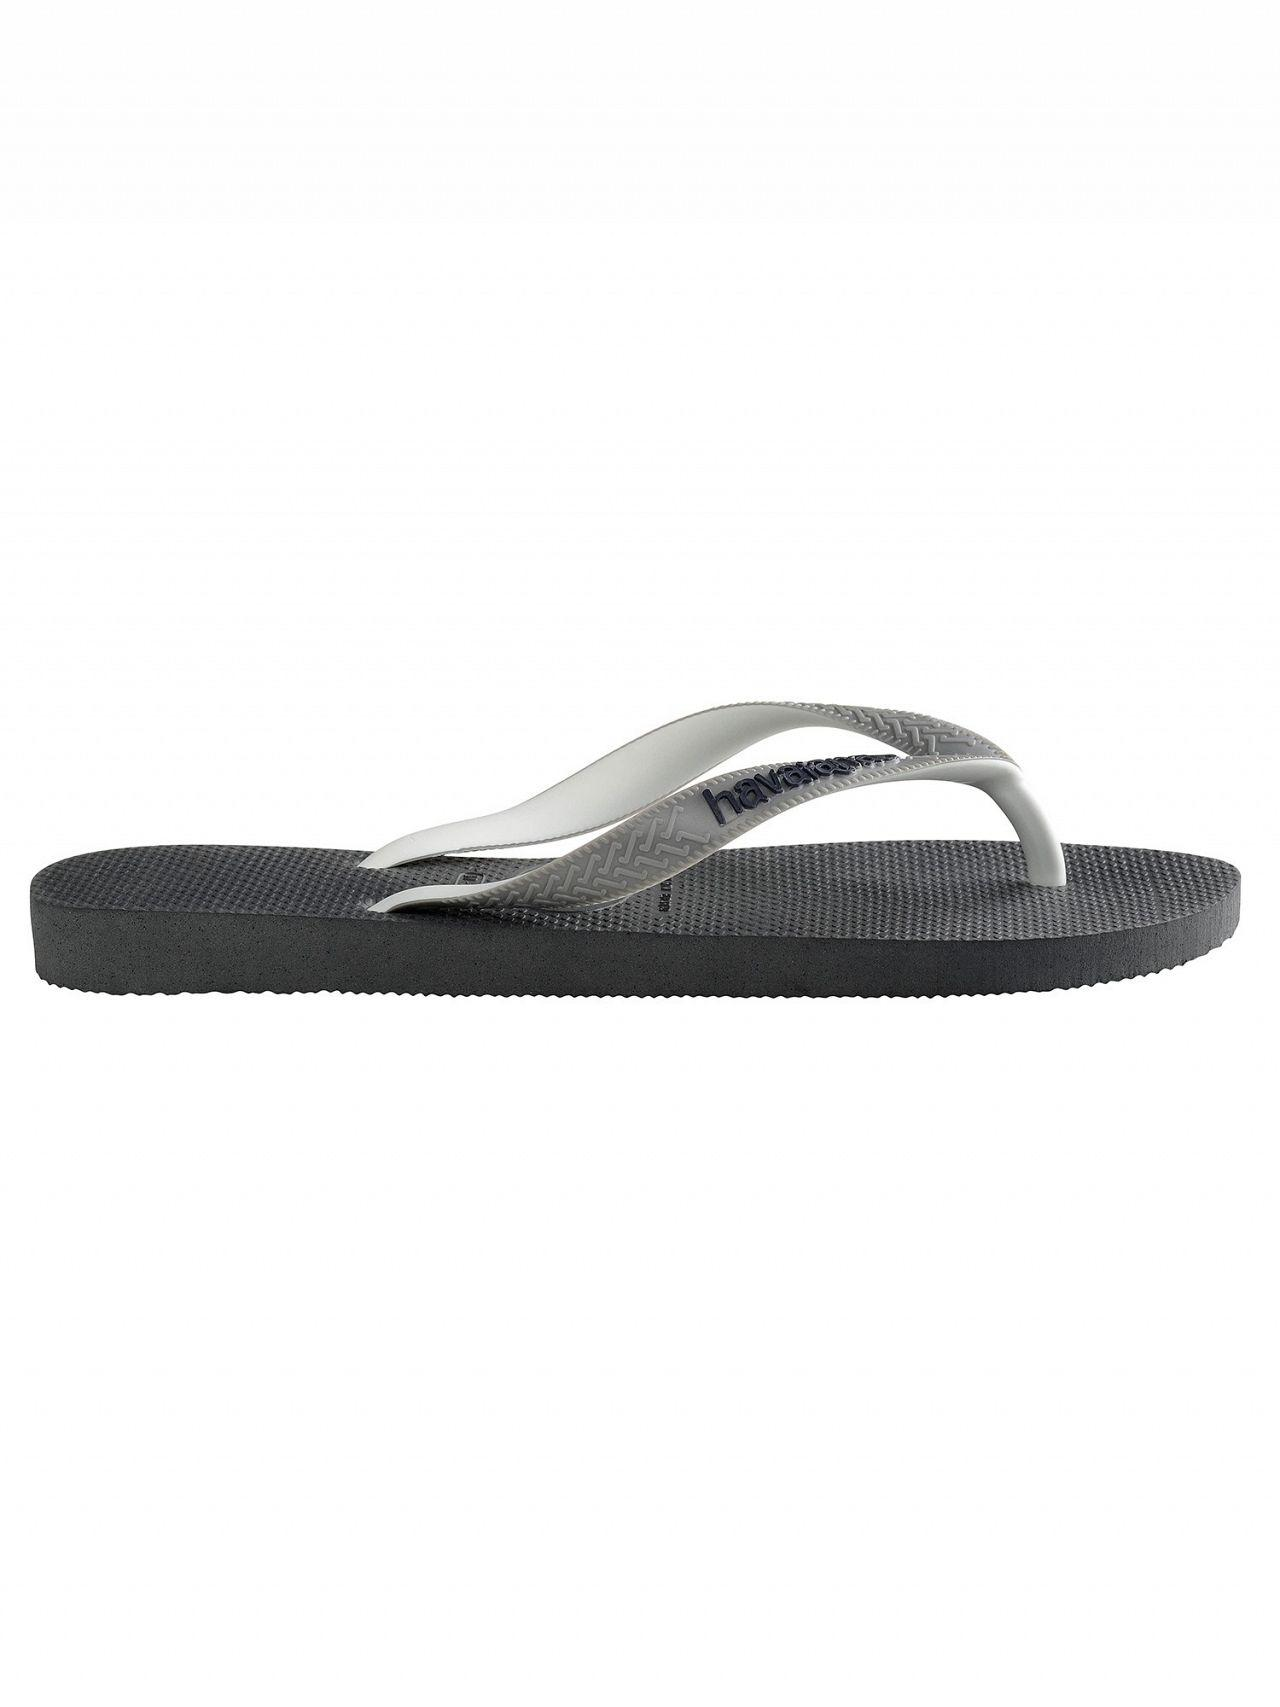 a25e19a9c Havaianas Graphite Grey Top Mix Flip Flops in Gray for Men - Lyst